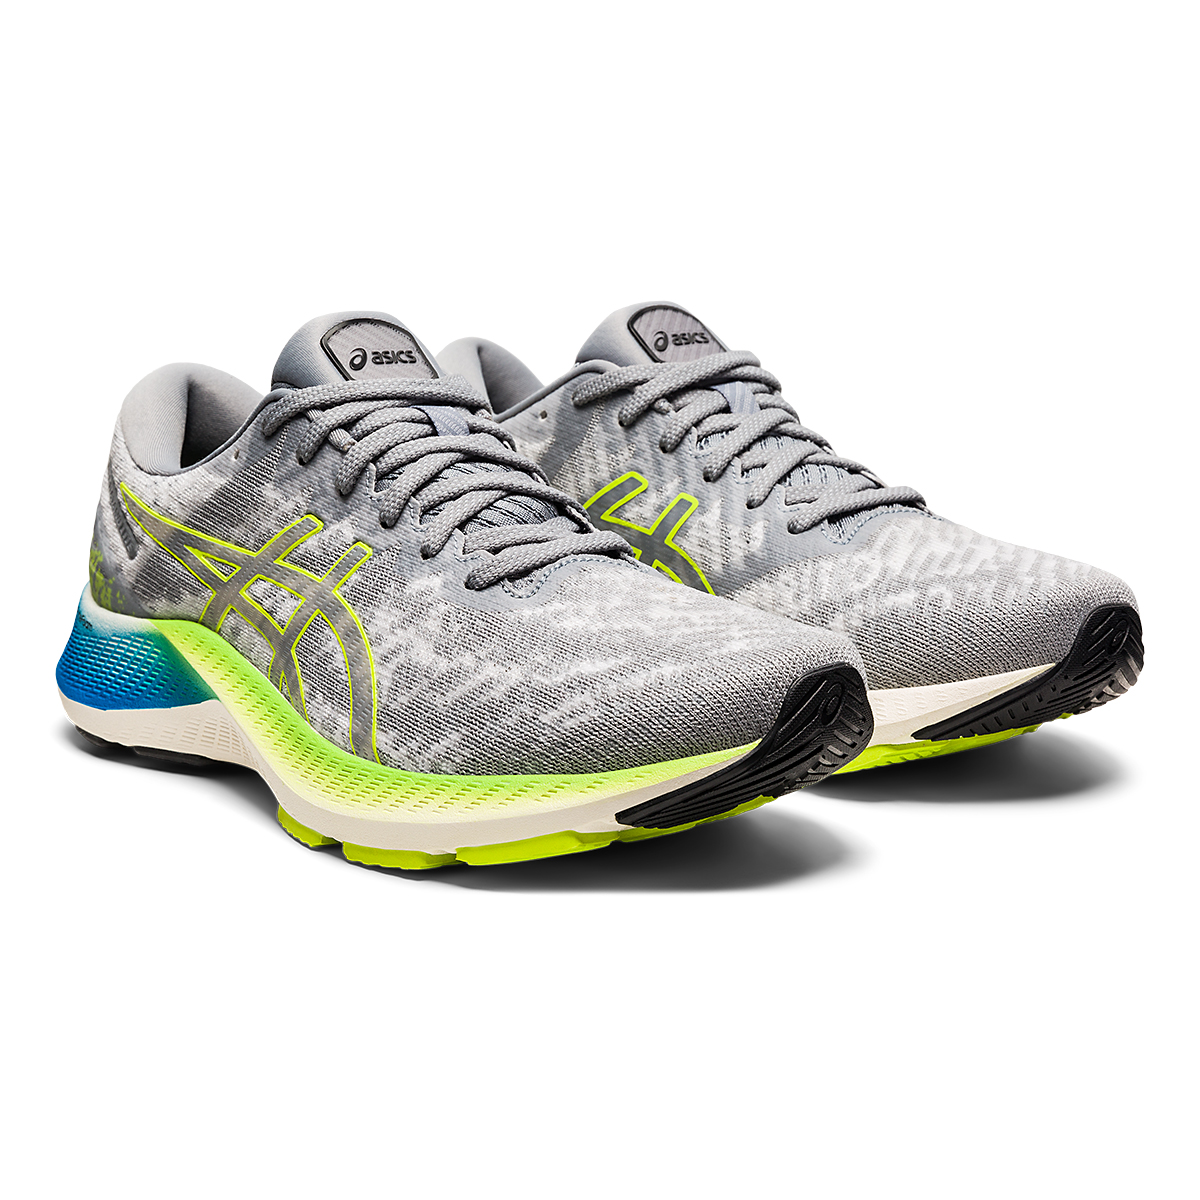 Men's Asics GEL-Kayano Lite Running Shoe - Color: Piedmont Grey/Sheet Rock - Size: 13 - Width: Regular, Piedmont Grey/Sheet Rock, large, image 3